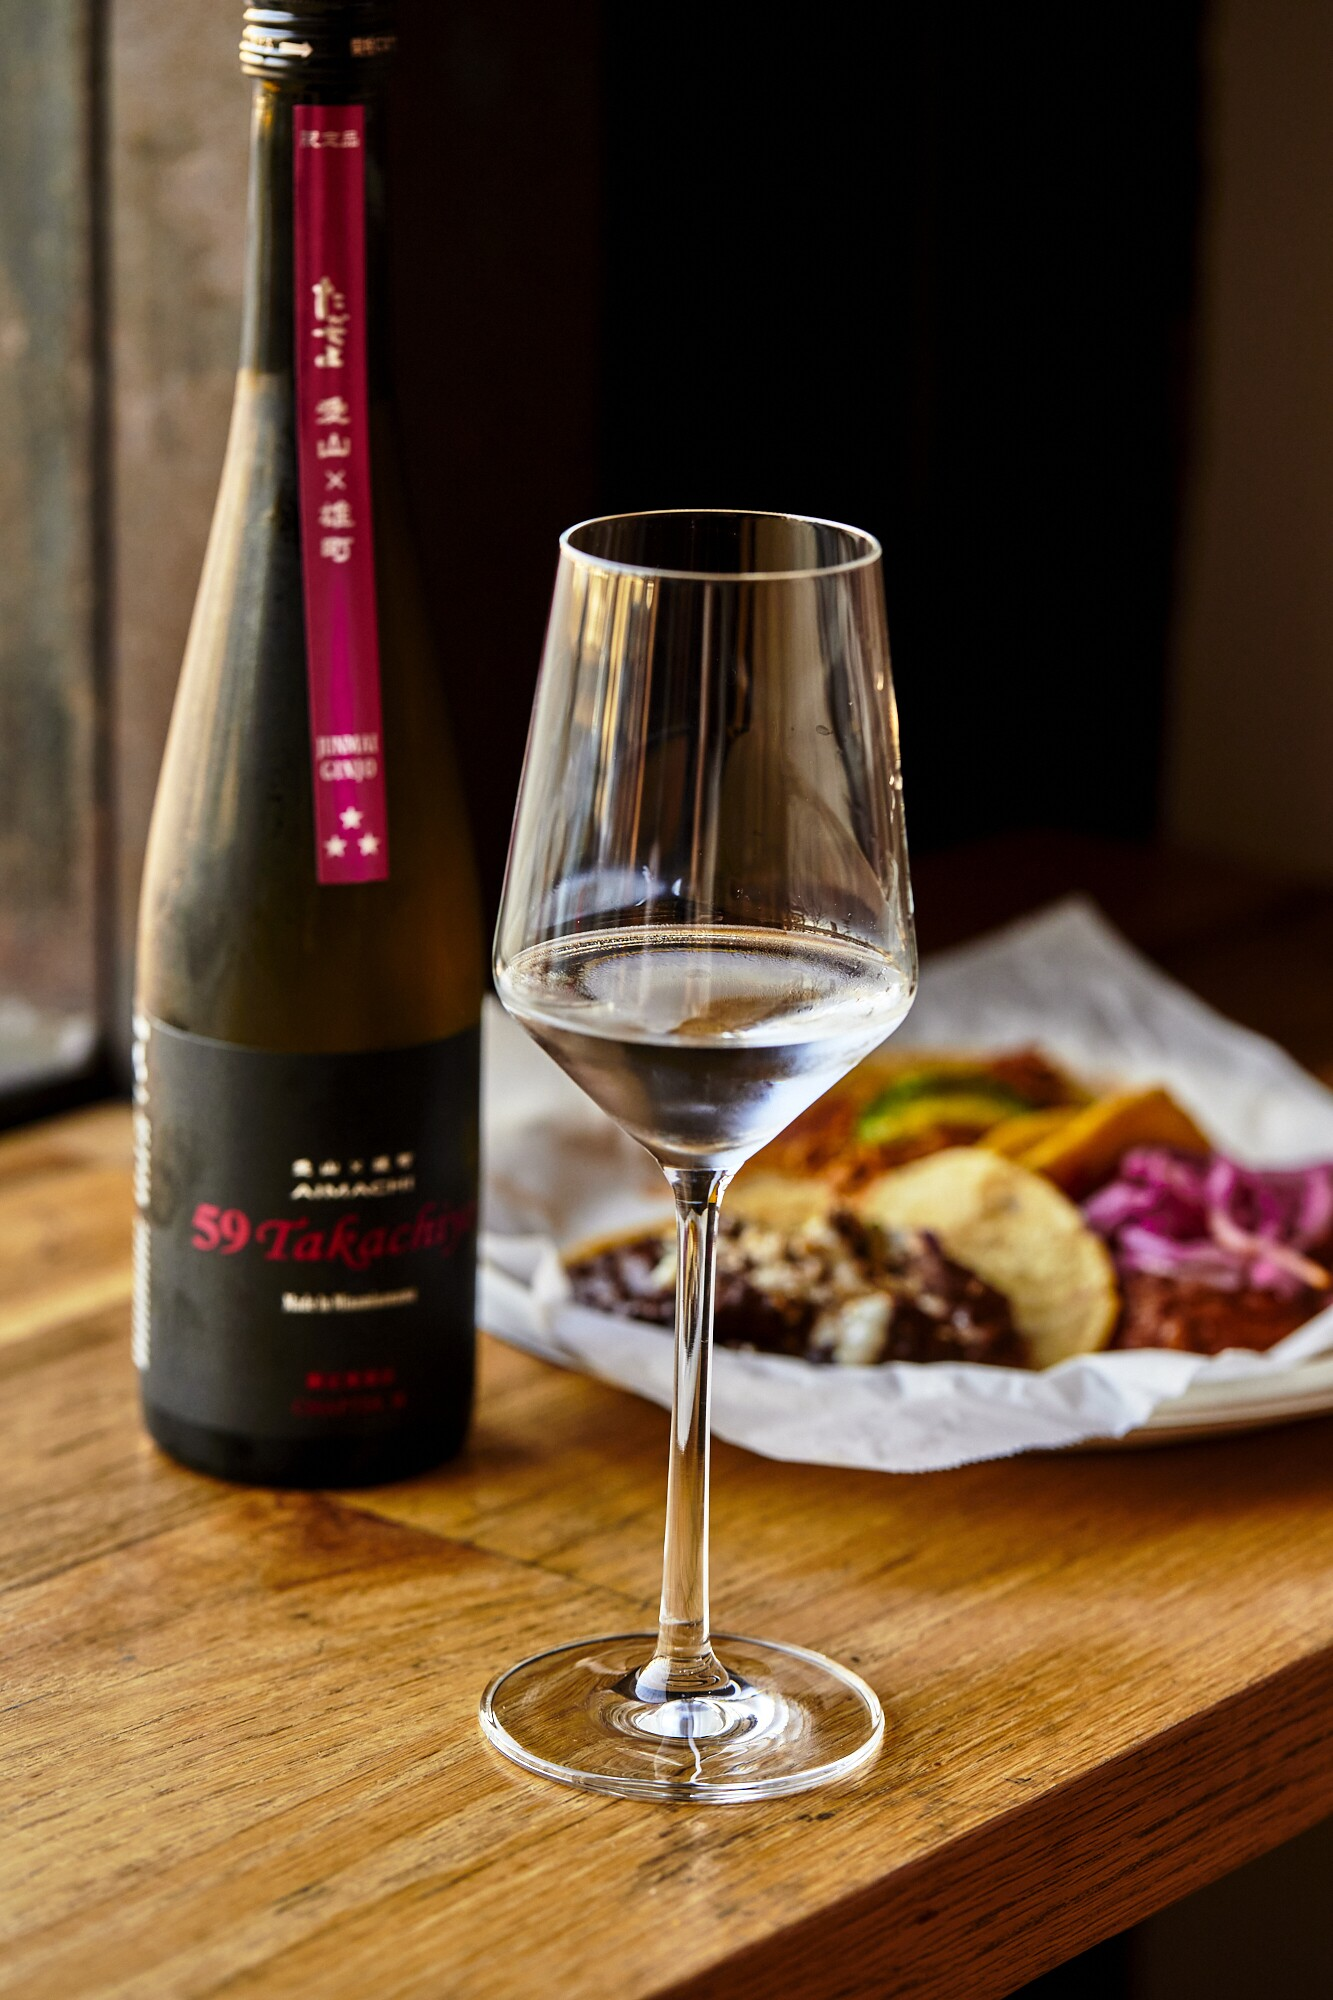 A bottle of unpasteurized nama in a wine glass is set in front of street tacos.